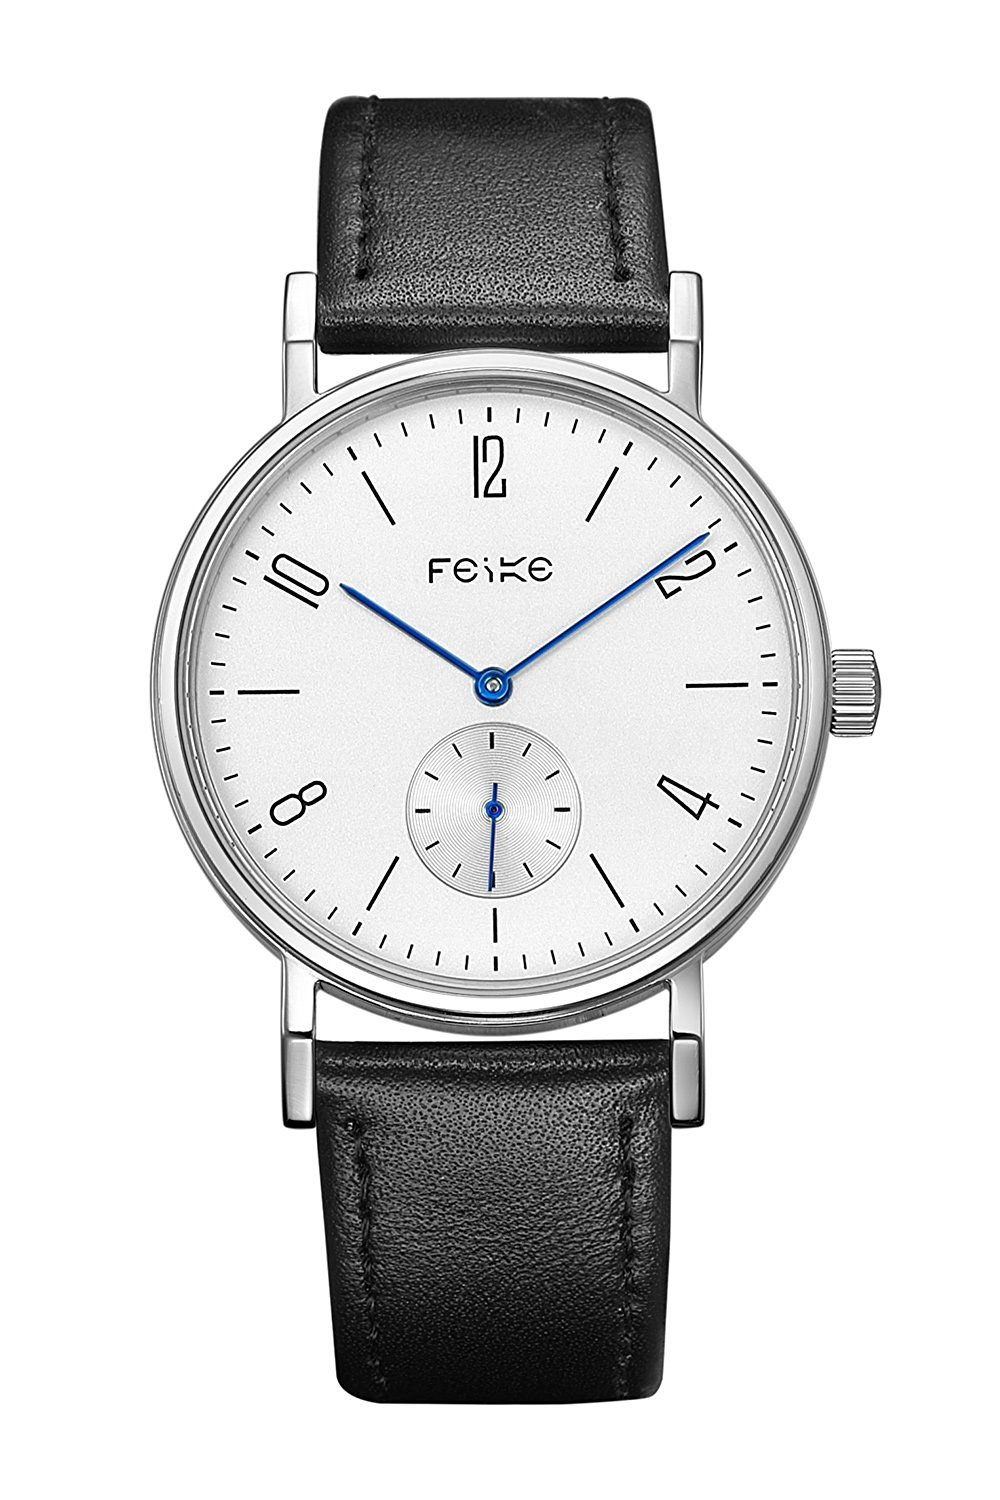 FEICE Automatic Mechanical Men's Watch Chronograph Wrist Watch for men Stainless Steel Leather Watch Bands Casual Simple Business Watch Best Gift #FM201(Black-1) …